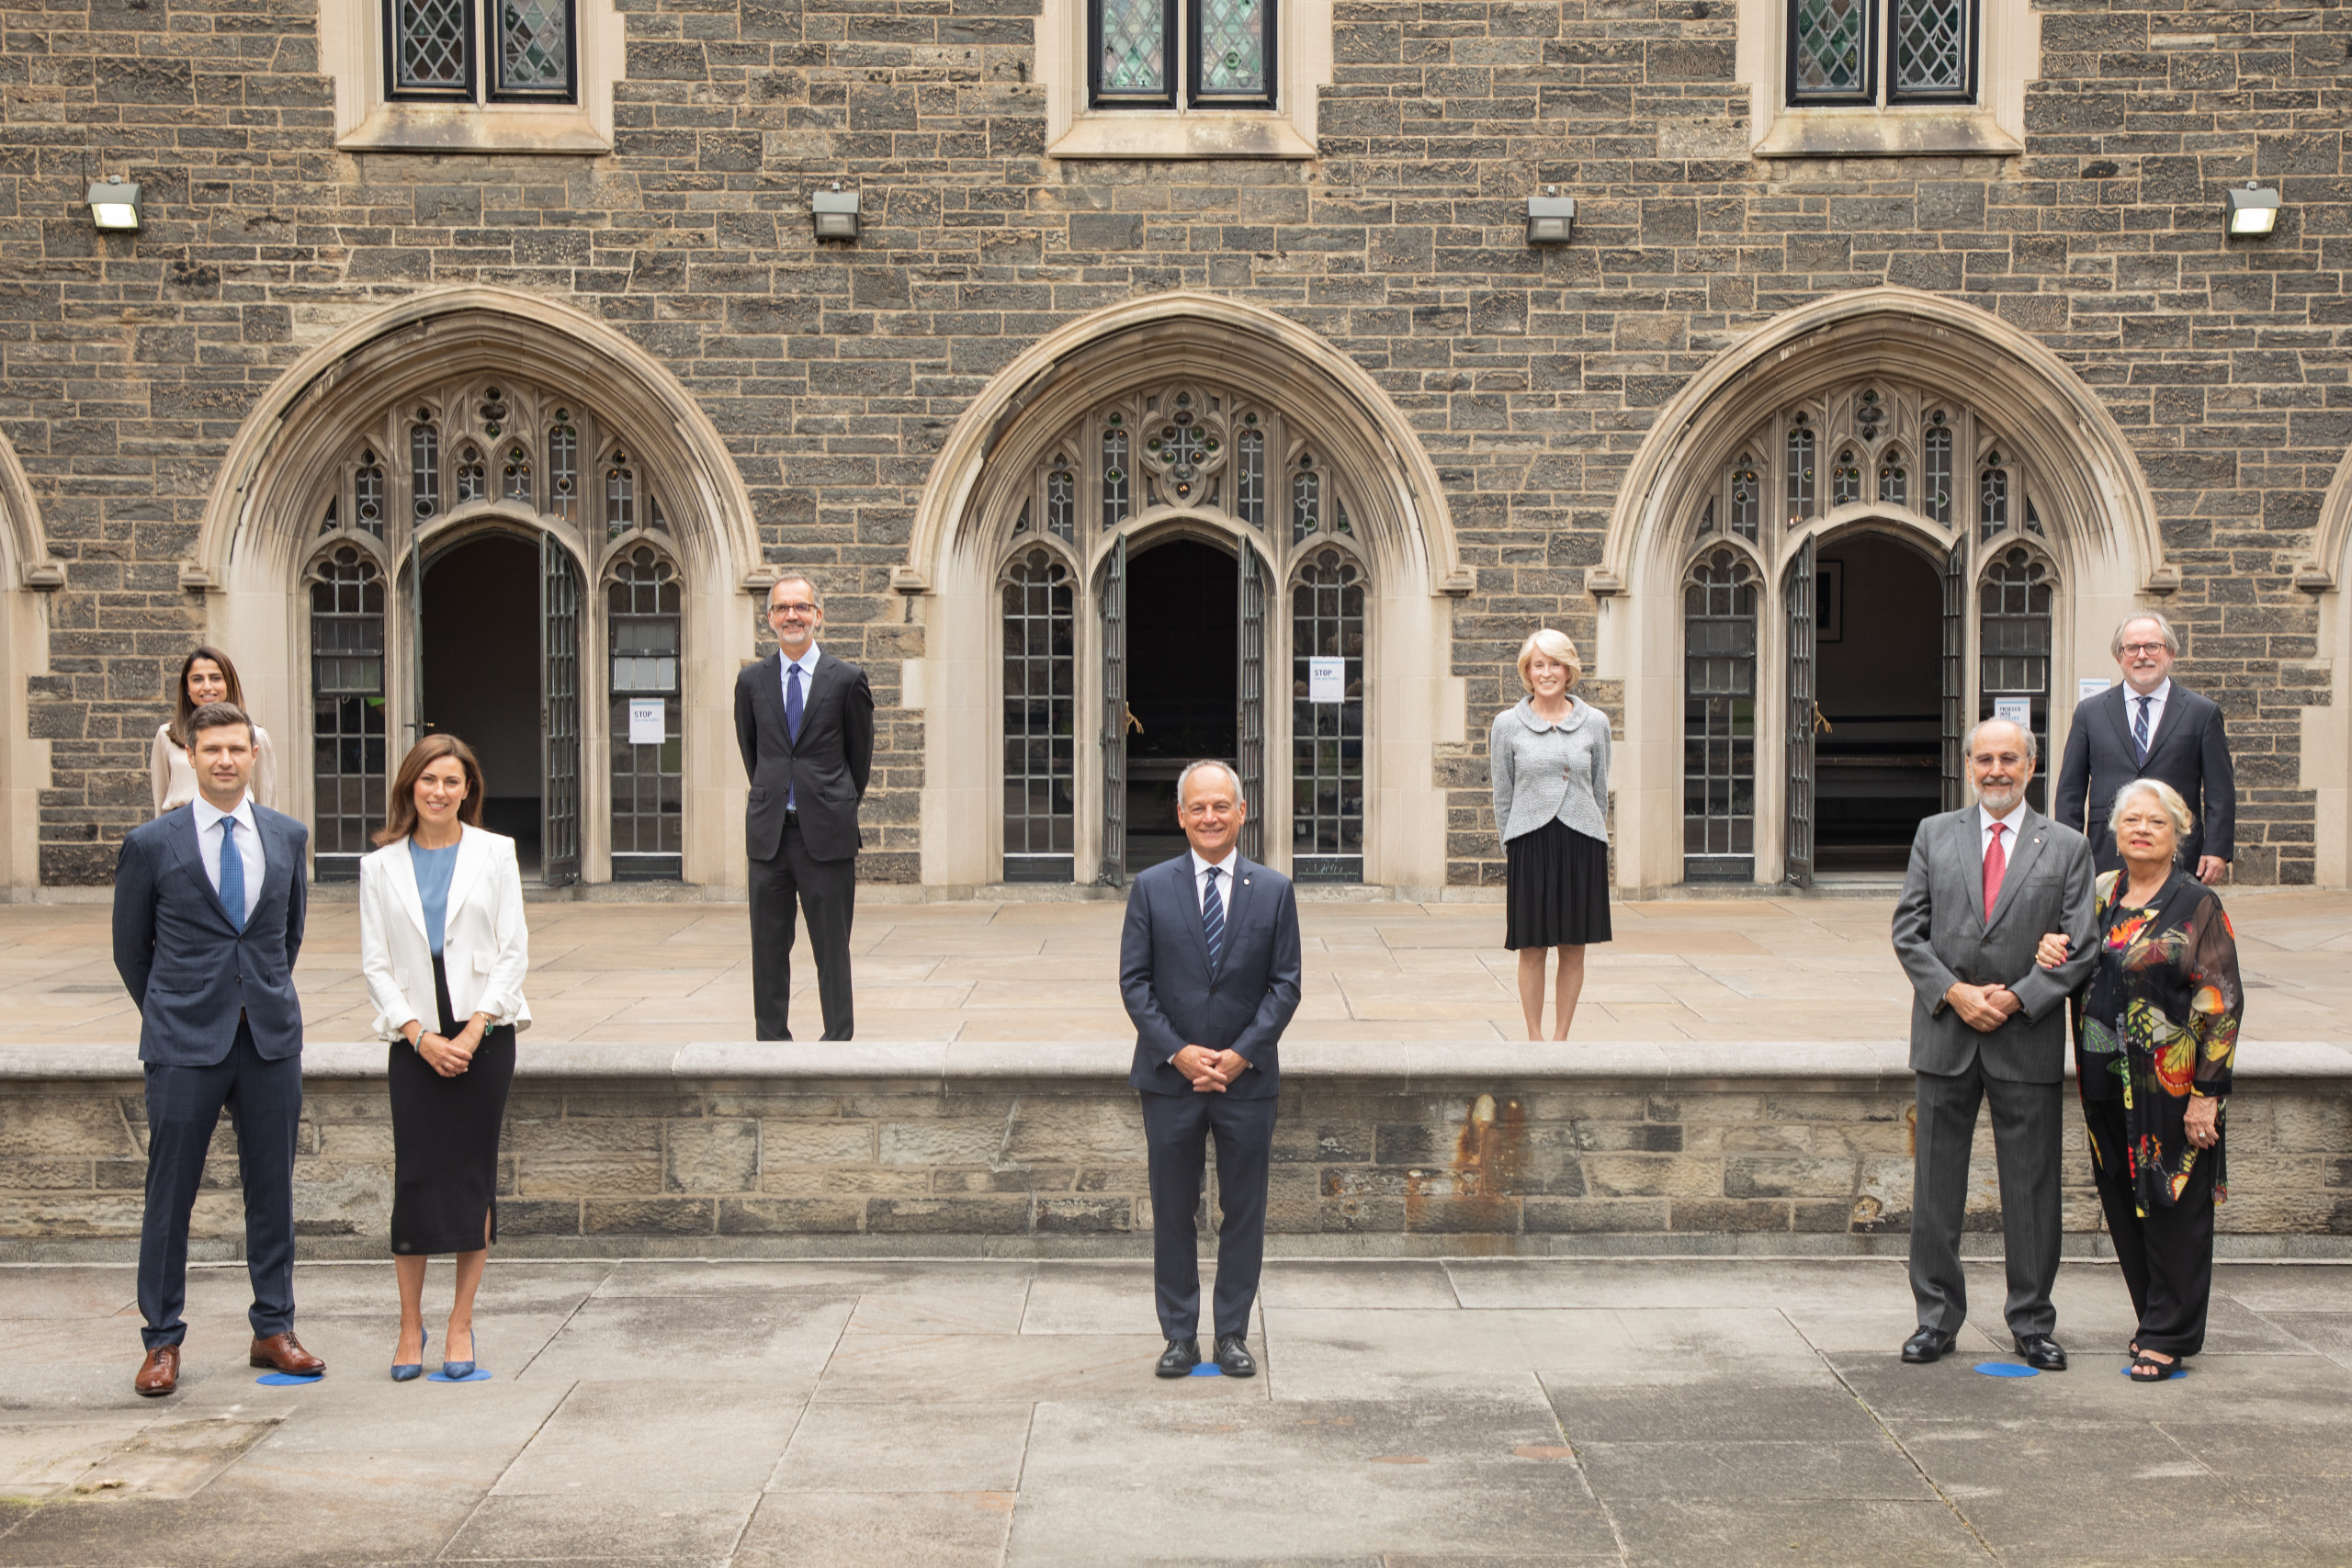 Standing at safe distances, standing in two rows outside of Hart House following the announcement of the Temerty Foundation's historic gift to U of T Medicine. Back row (left to right): Hira Raheel, MD Candidate; Trevor Young, Dean, Temerty Faculty of Medicine; Rose Patten, Chancellor, U of T; David Palmer, Vice-President, Advancement, U of T; front row: Mike Lord; Leah Temerty-Lord; Meric Gertler, President, U of T; James Temerty; Louise Temerty.